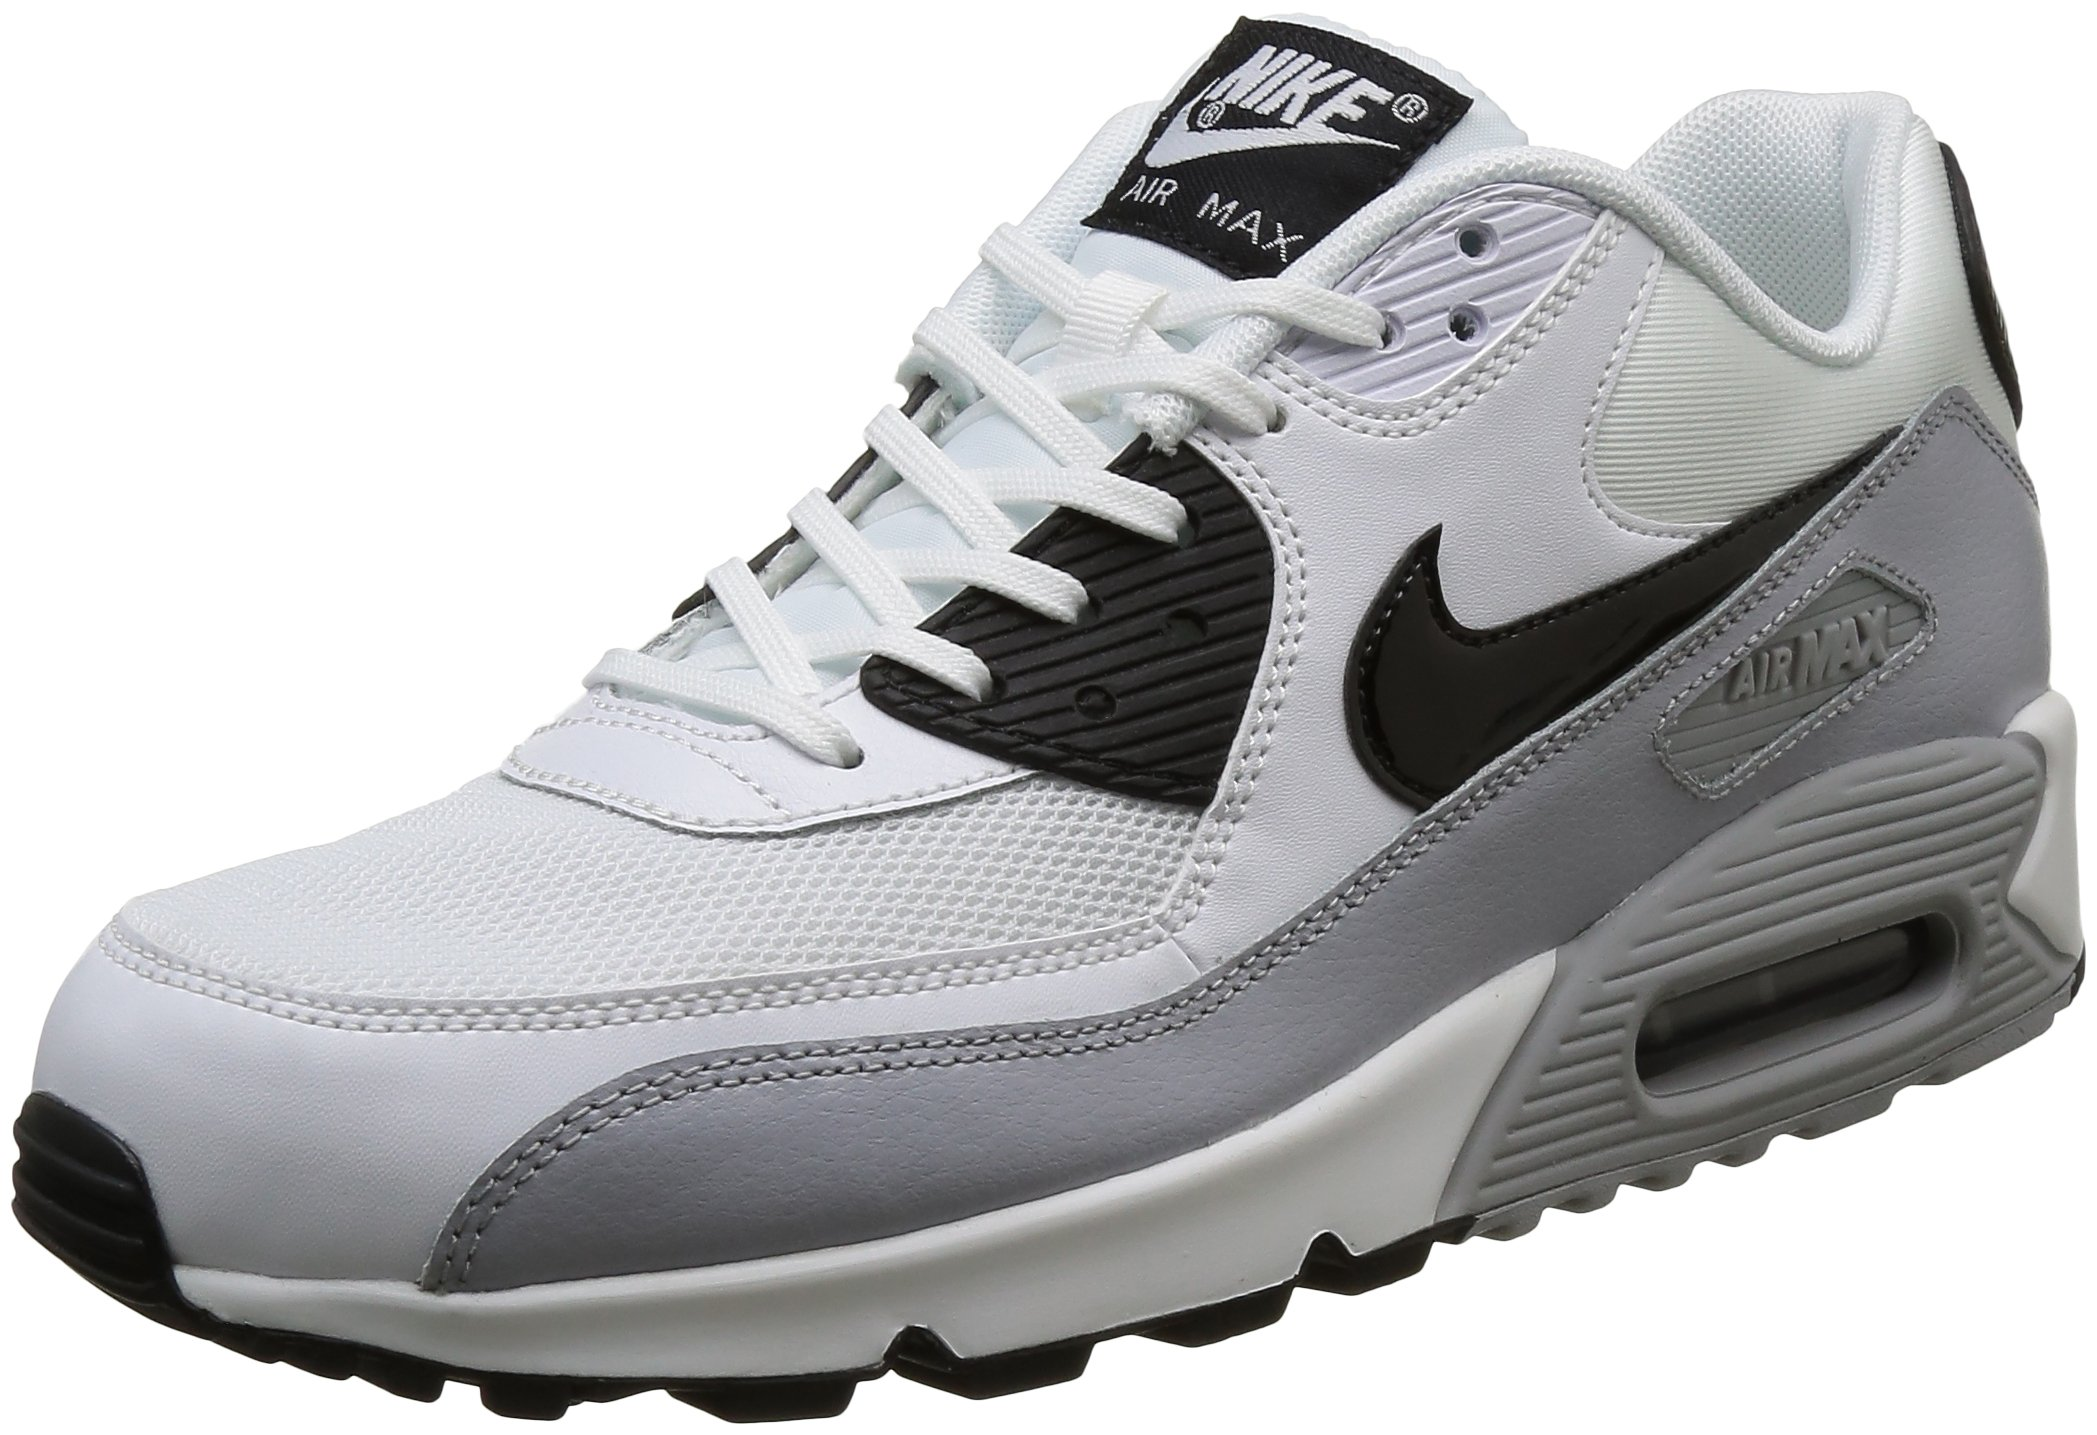 new concept b4299 86b03 Galleon - NIKE Air Max 90 Essential Women s Shoes White Black Wolf Grey  616730-111 (11 B(M) US)